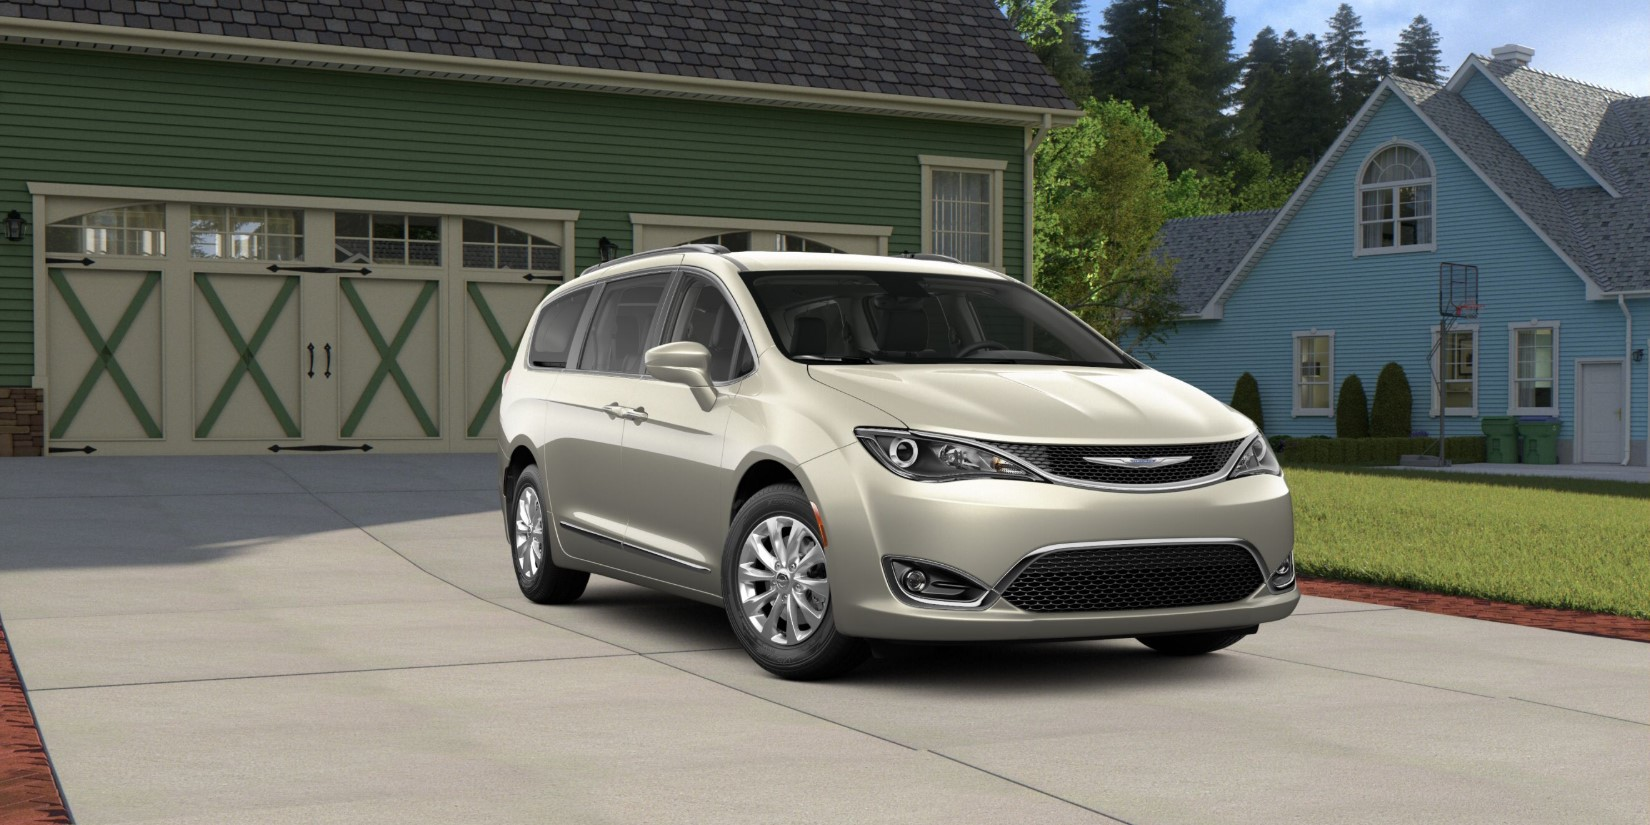 2019 Chrysler Pacifica Touring White Pearl Exterior Front Picture